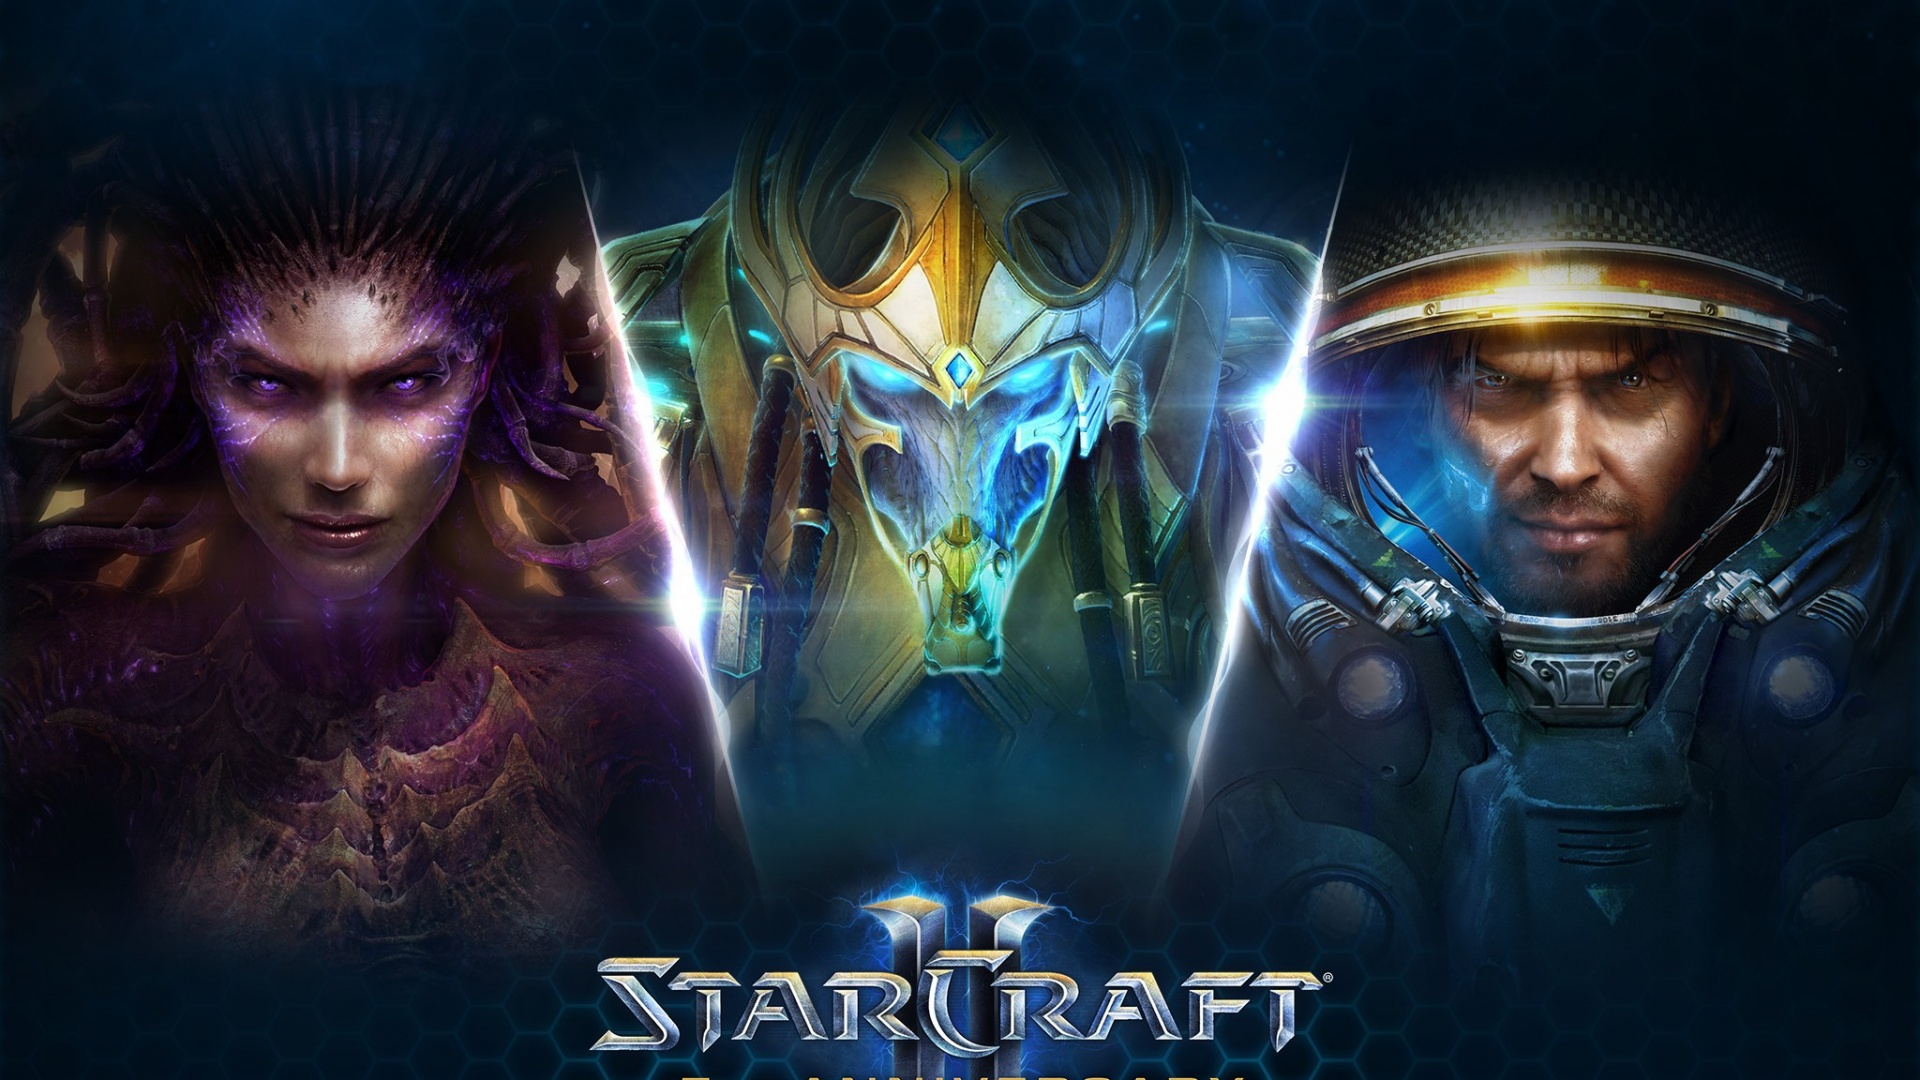 Legacy Of The Void Wallpapers: Starcraft 2 Legacy Of The Void Character Wallpapers